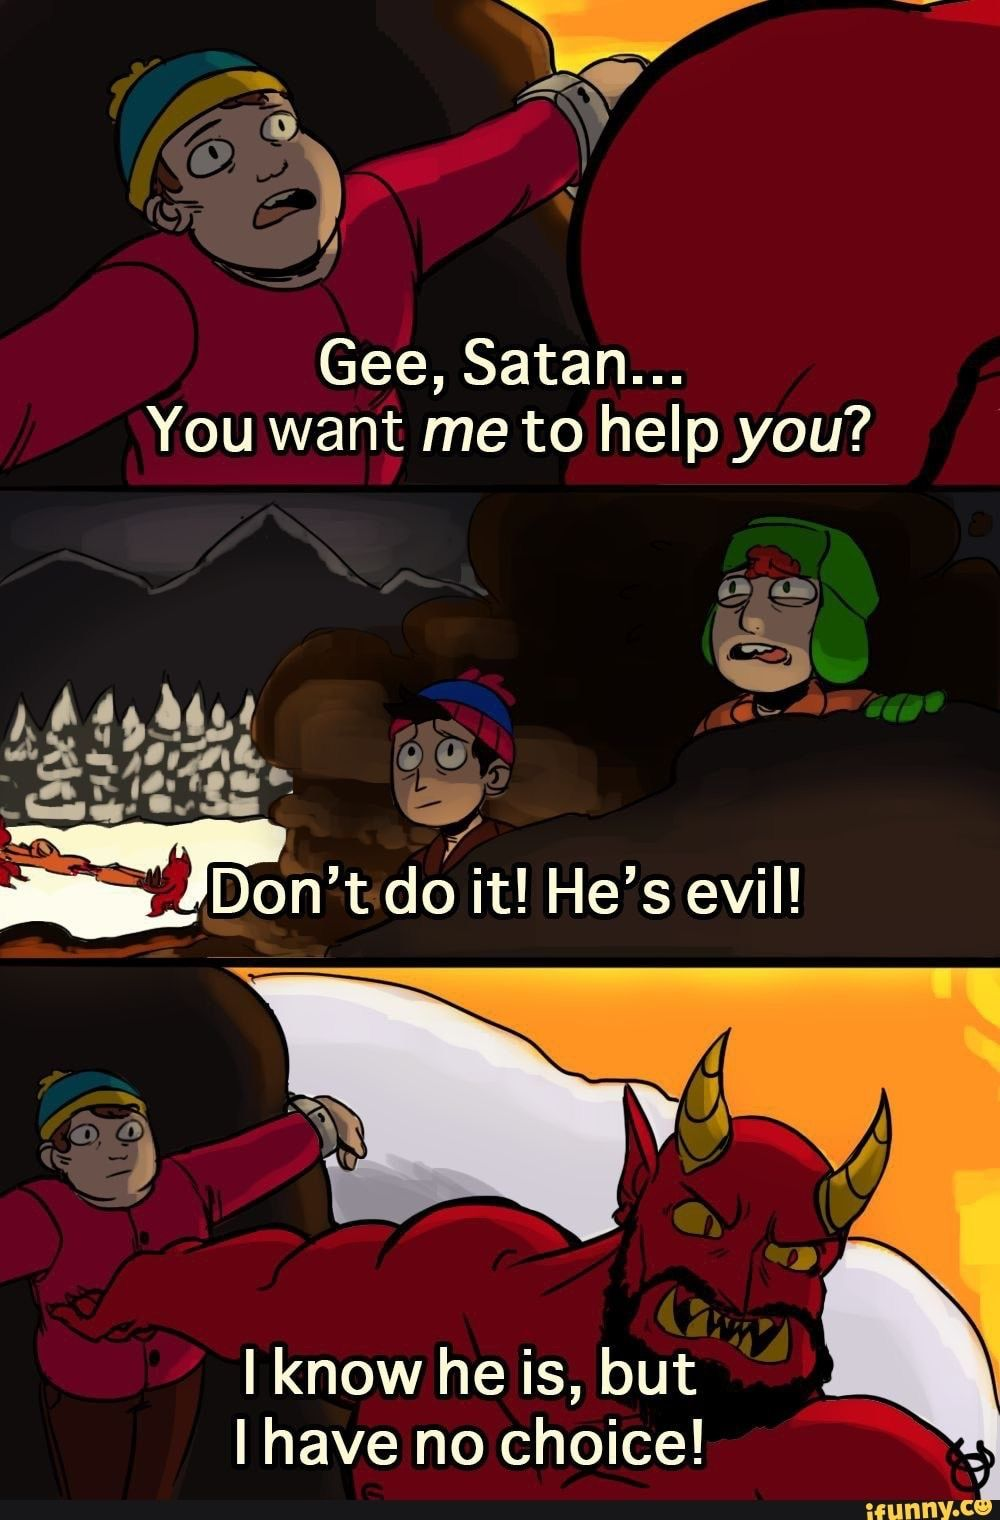 Pin By Xxn00bslayerxx On South Park Fanart In 2020 South Park Funny South Park Anime South Park Memes